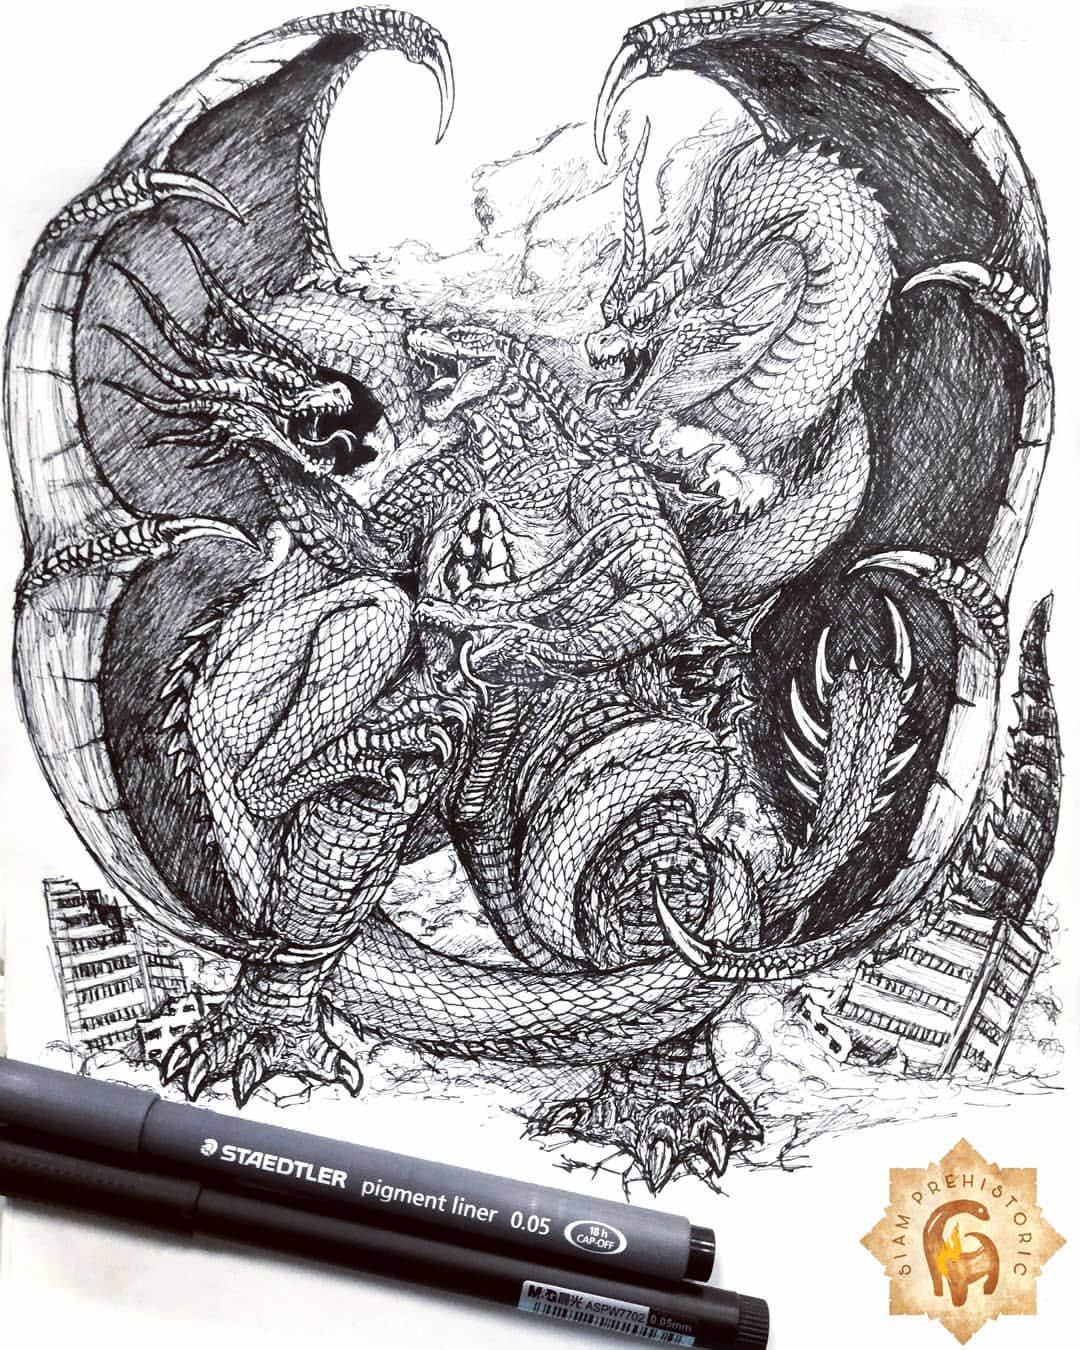 GODZILLA VS. KING GHIDORAH (2019) Drawing pen on paper